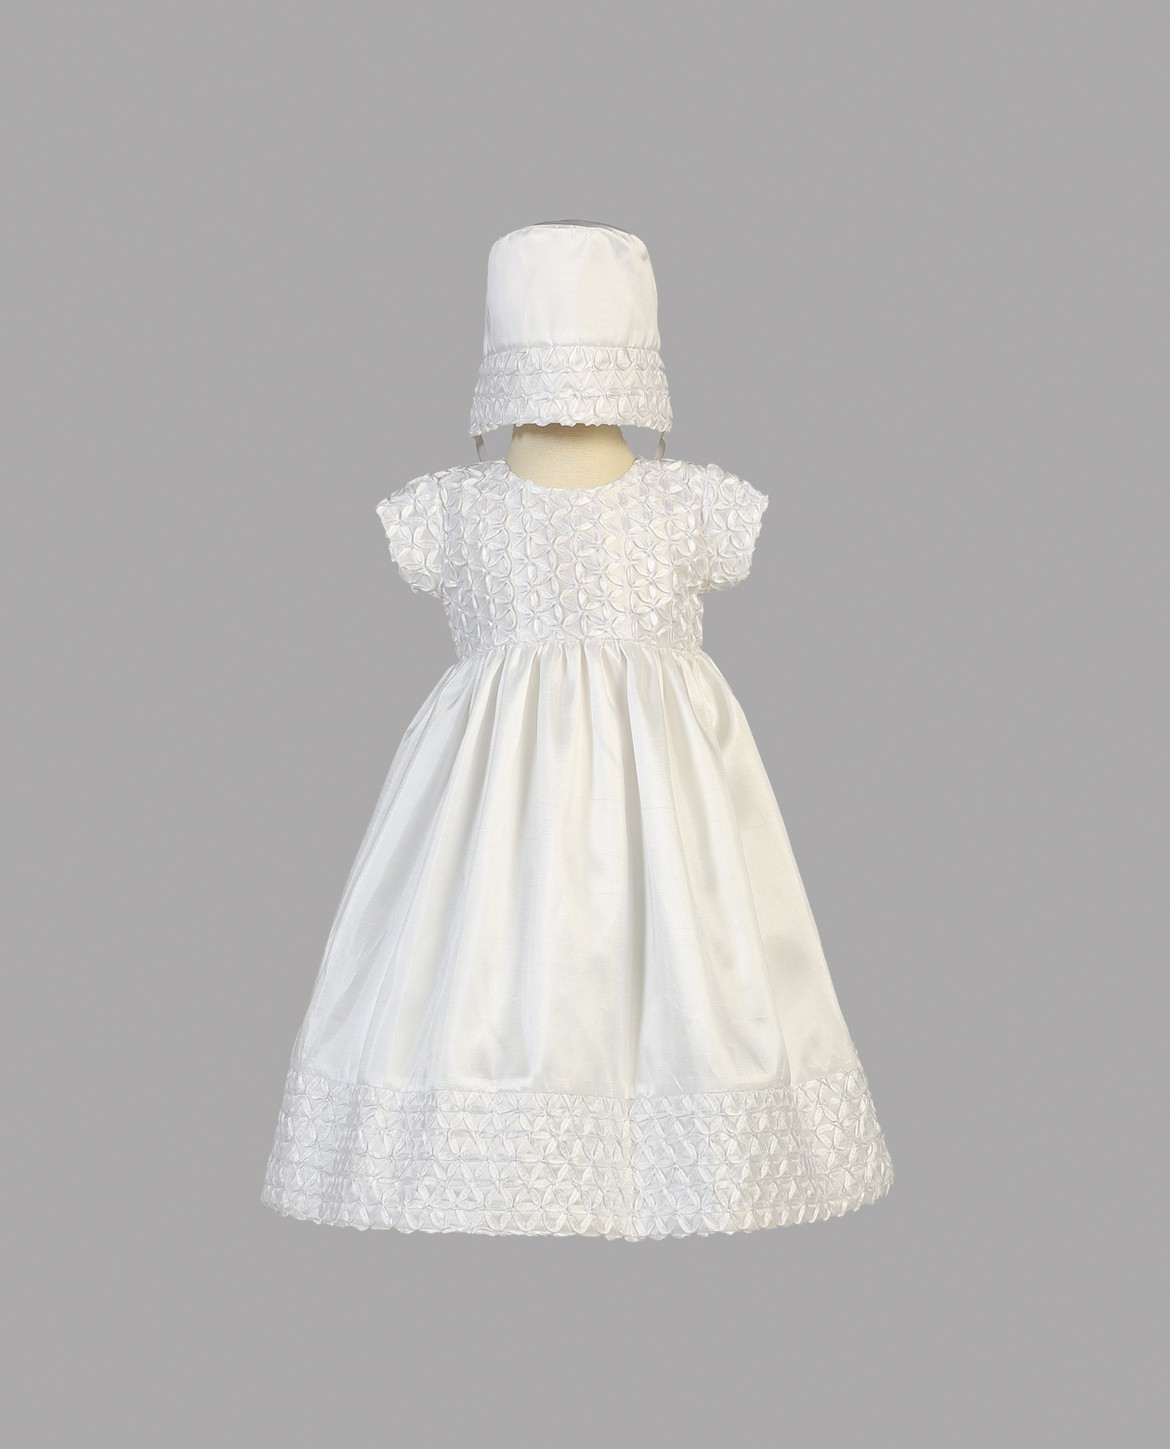 Girls Taffeta Christening Dresses for Sale | Taffeta Baptism Dresses ...